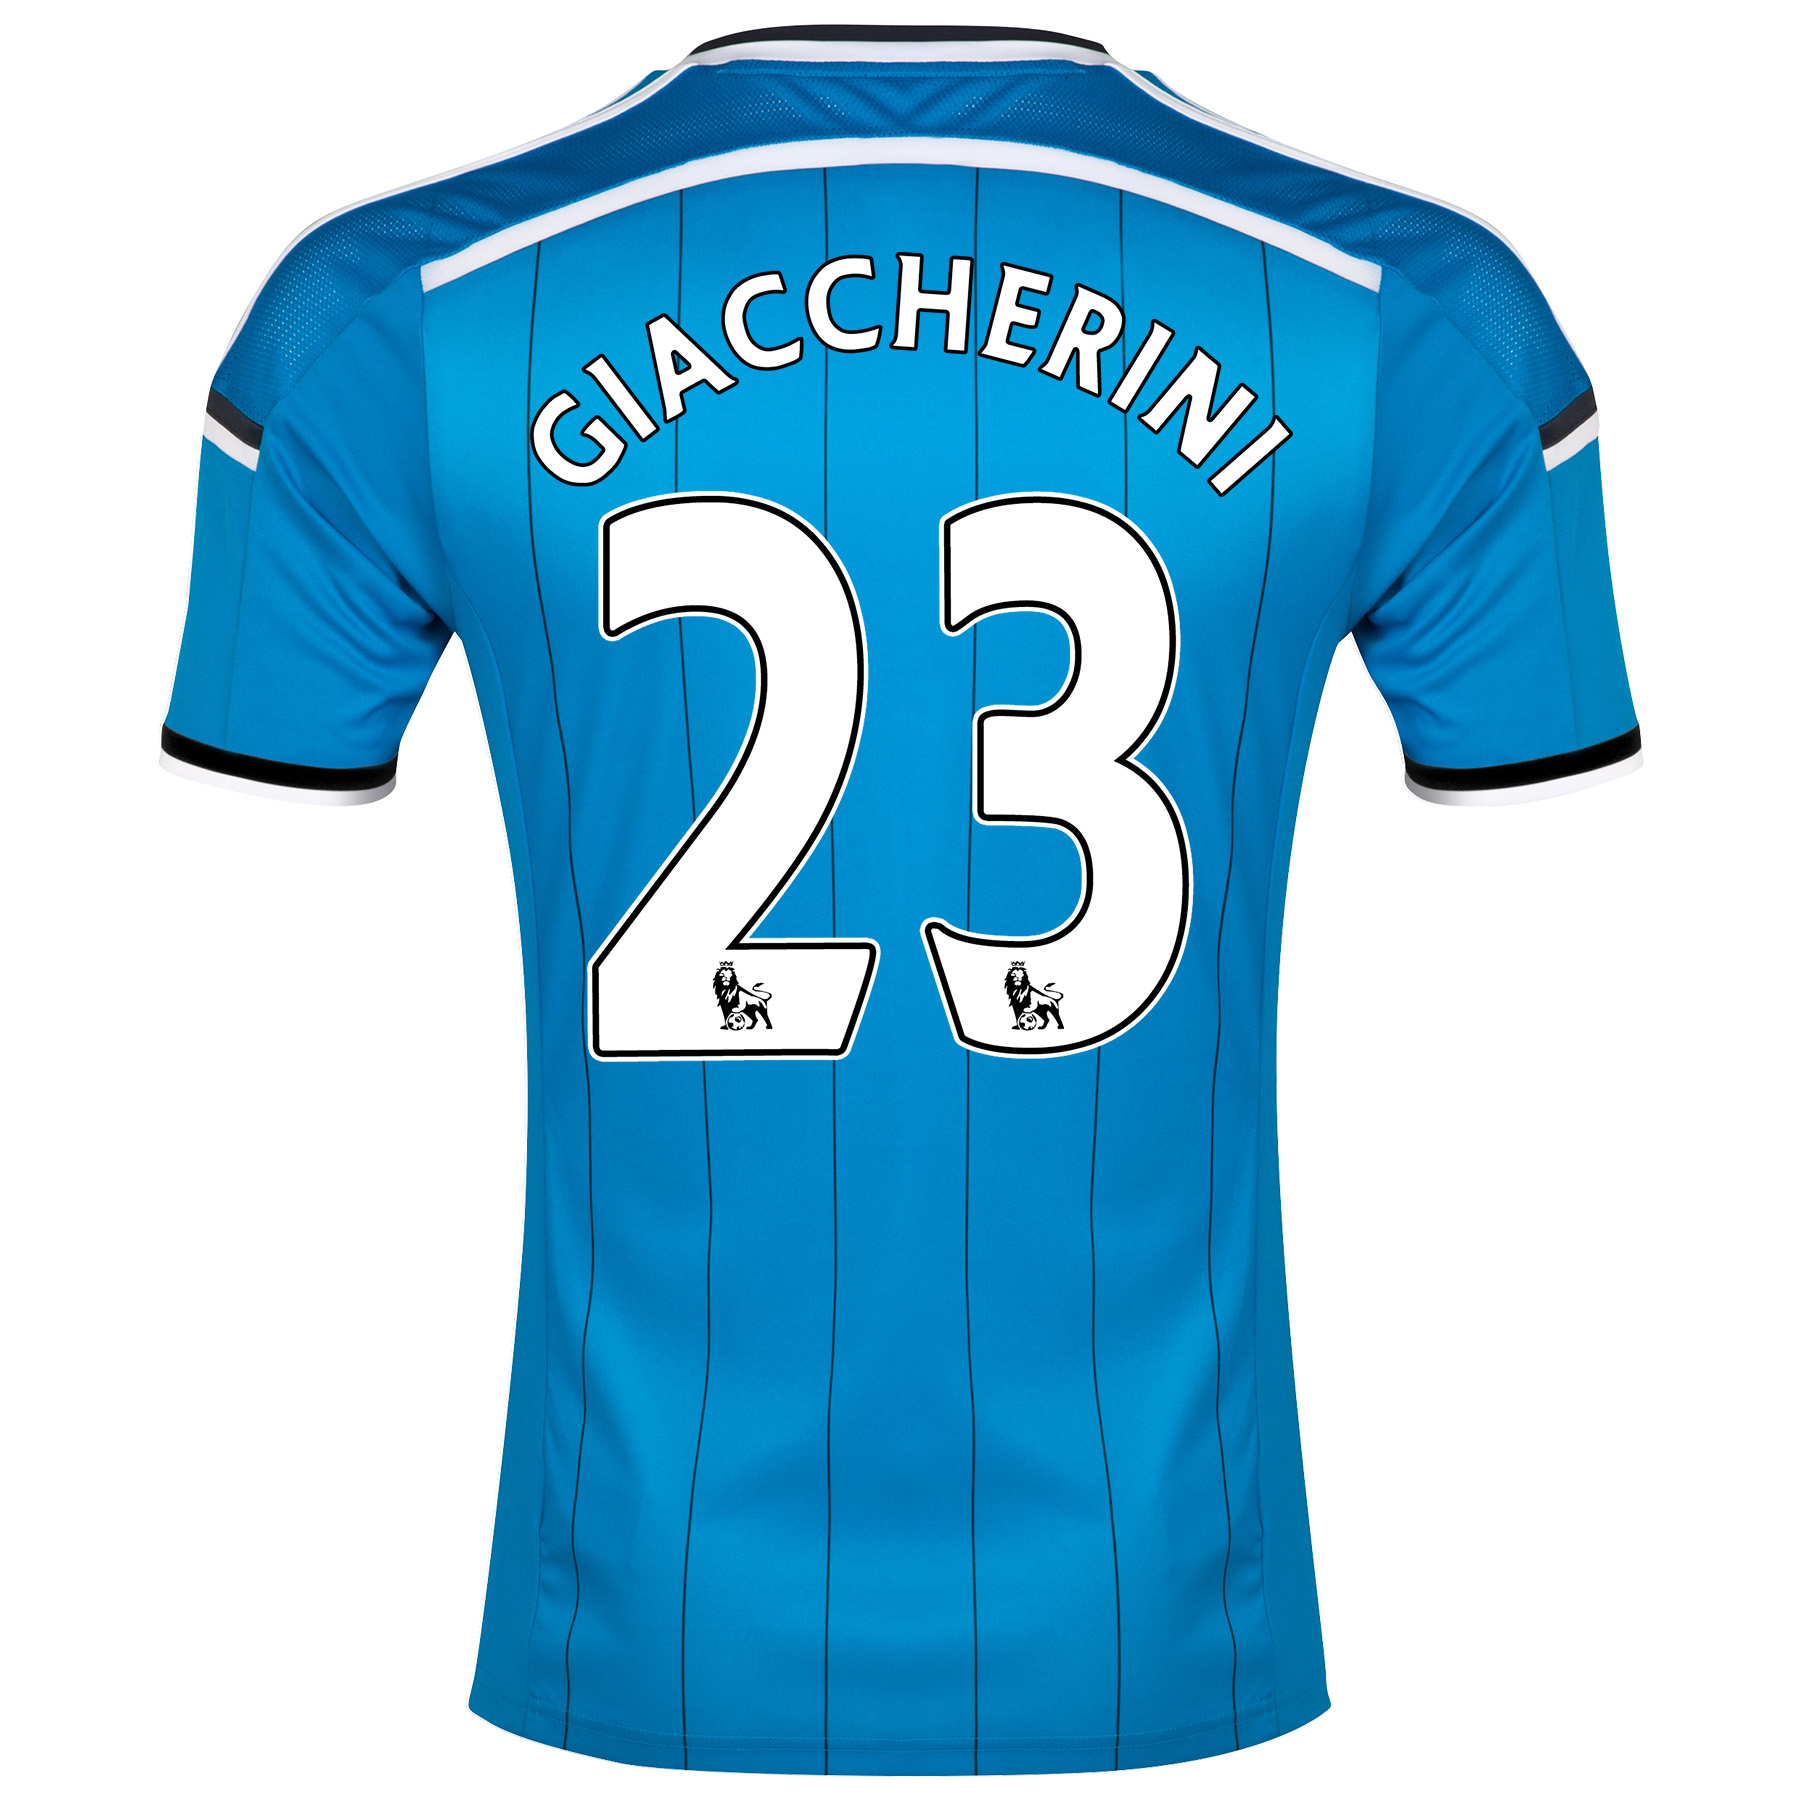 Sunderland Away Shirt 2014/15 - Junior Lt Blue with Giaccherini 23 printing